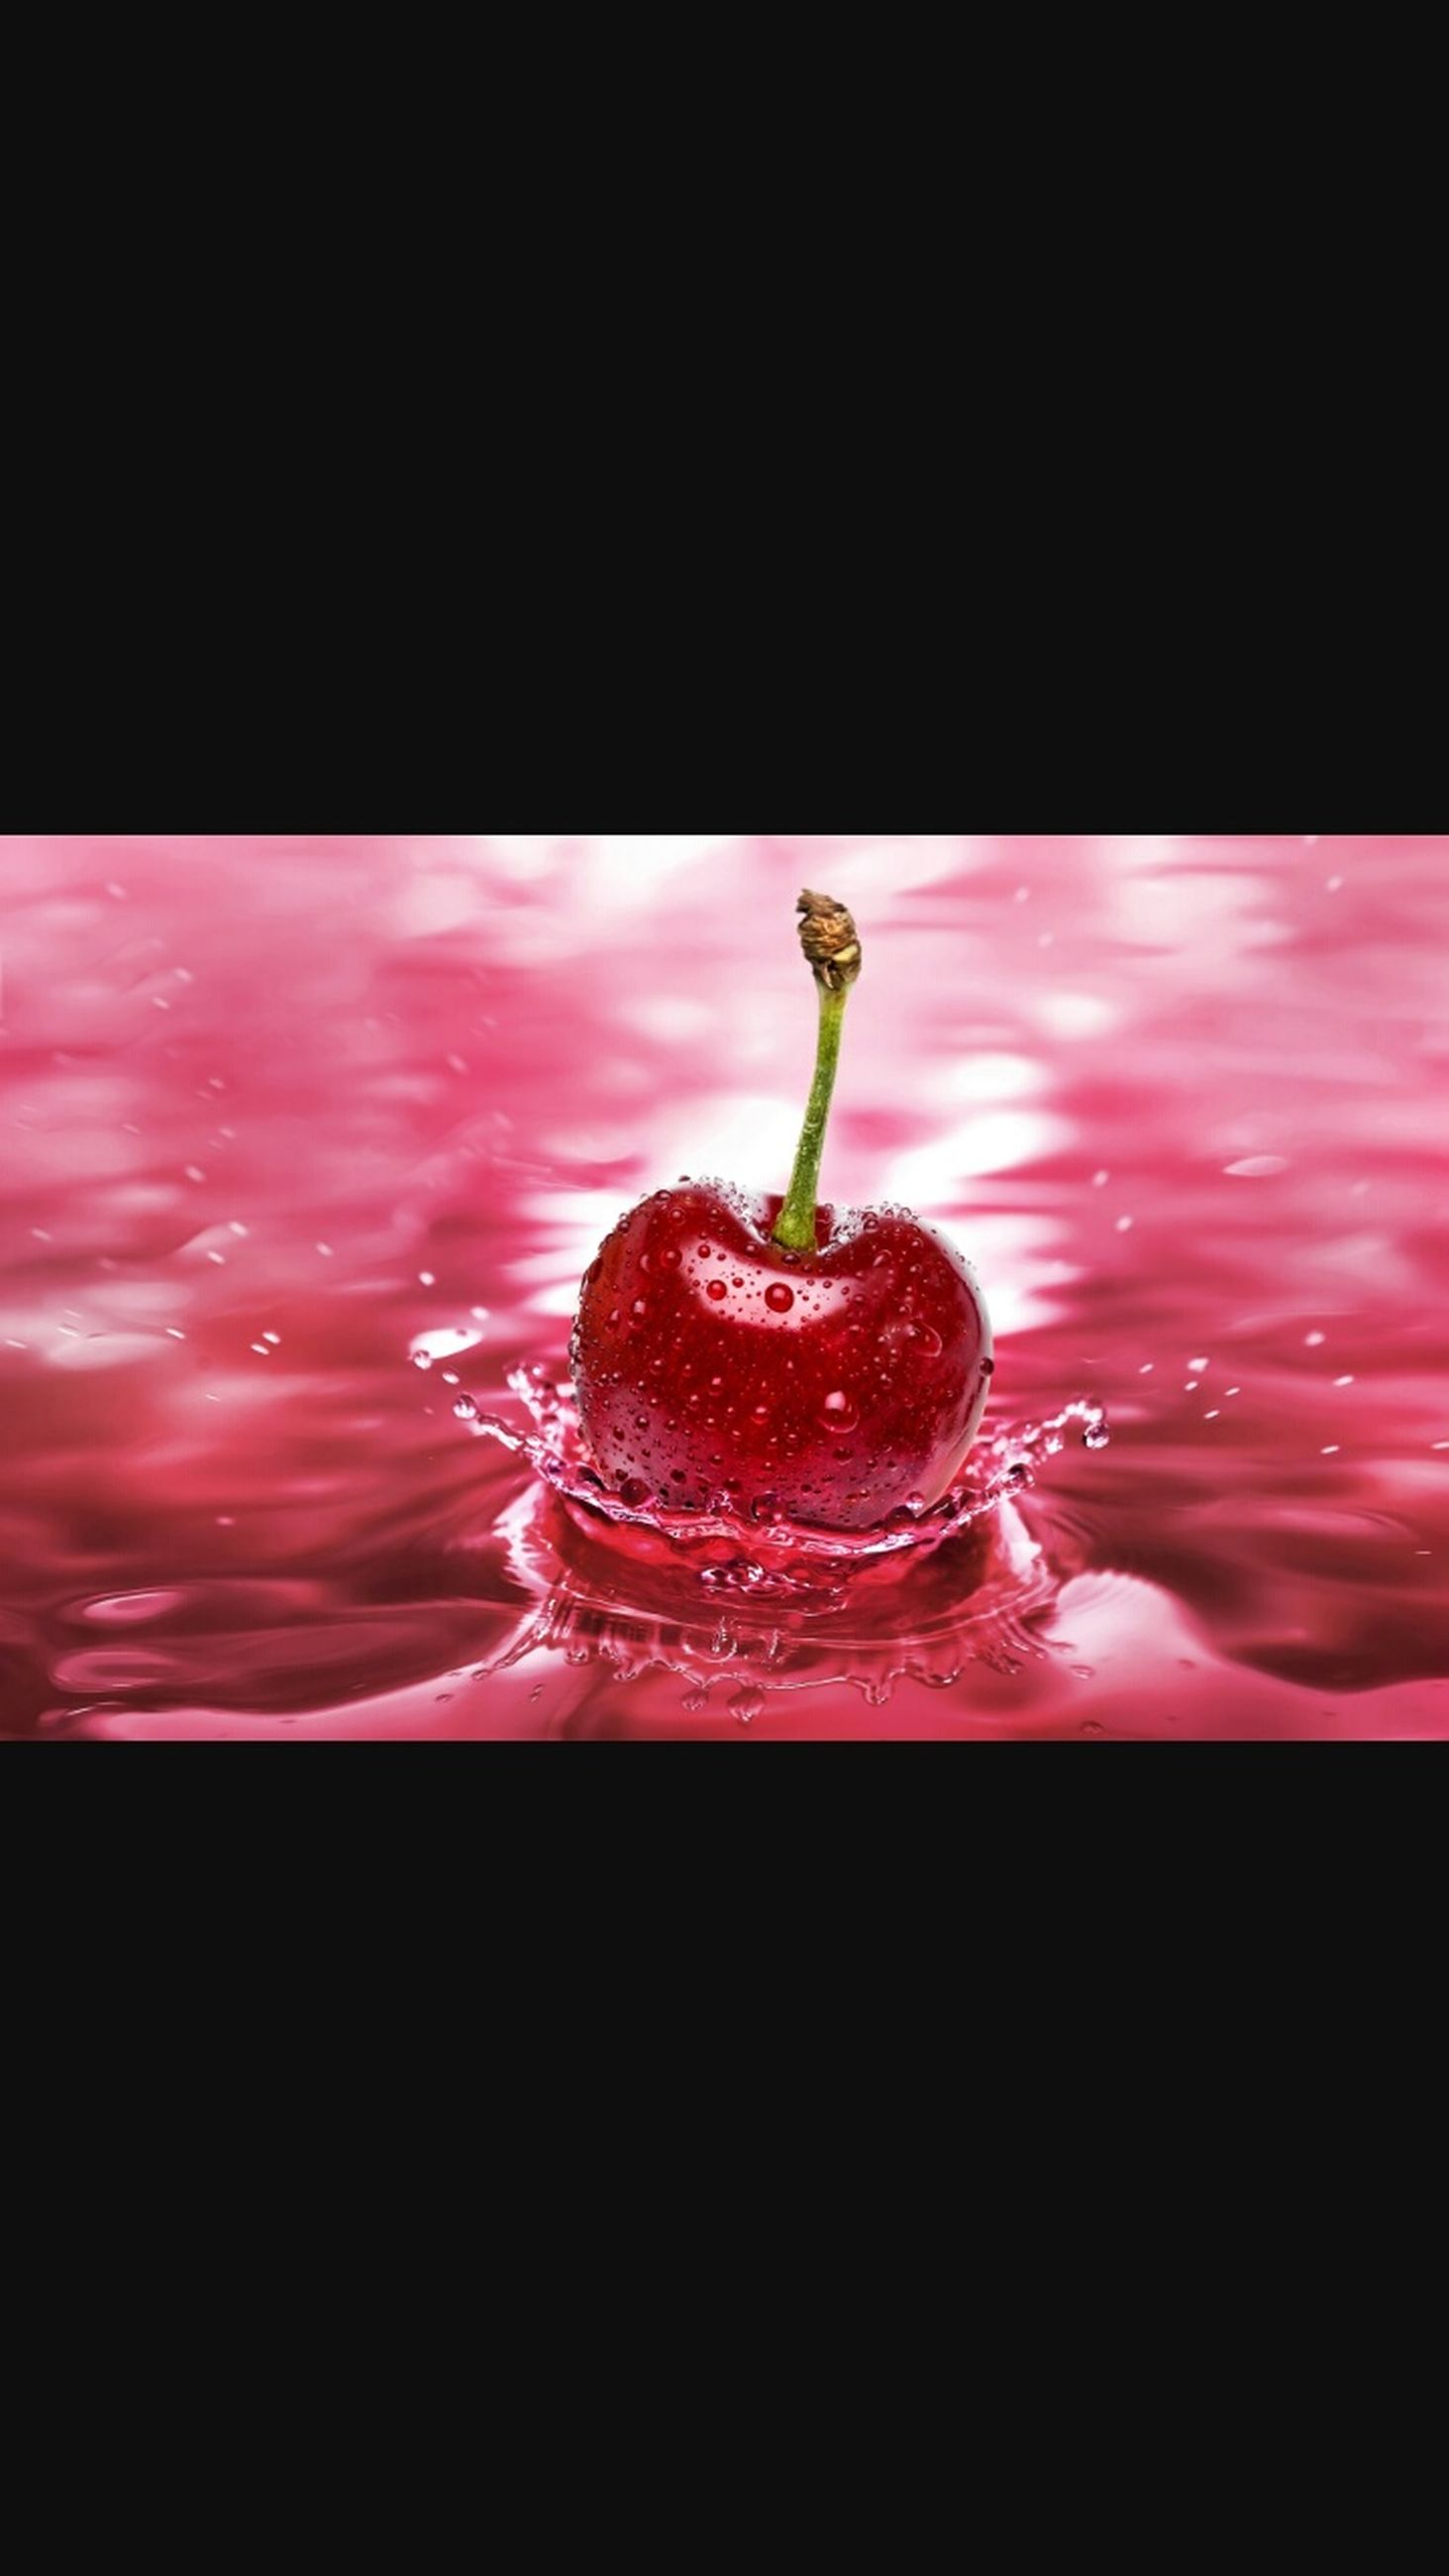 freshness, water, drop, close-up, red, studio shot, black background, pink color, flower, wet, food and drink, reflection, indoors, no people, splashing, fragility, copy space, focus on foreground, night, selective focus